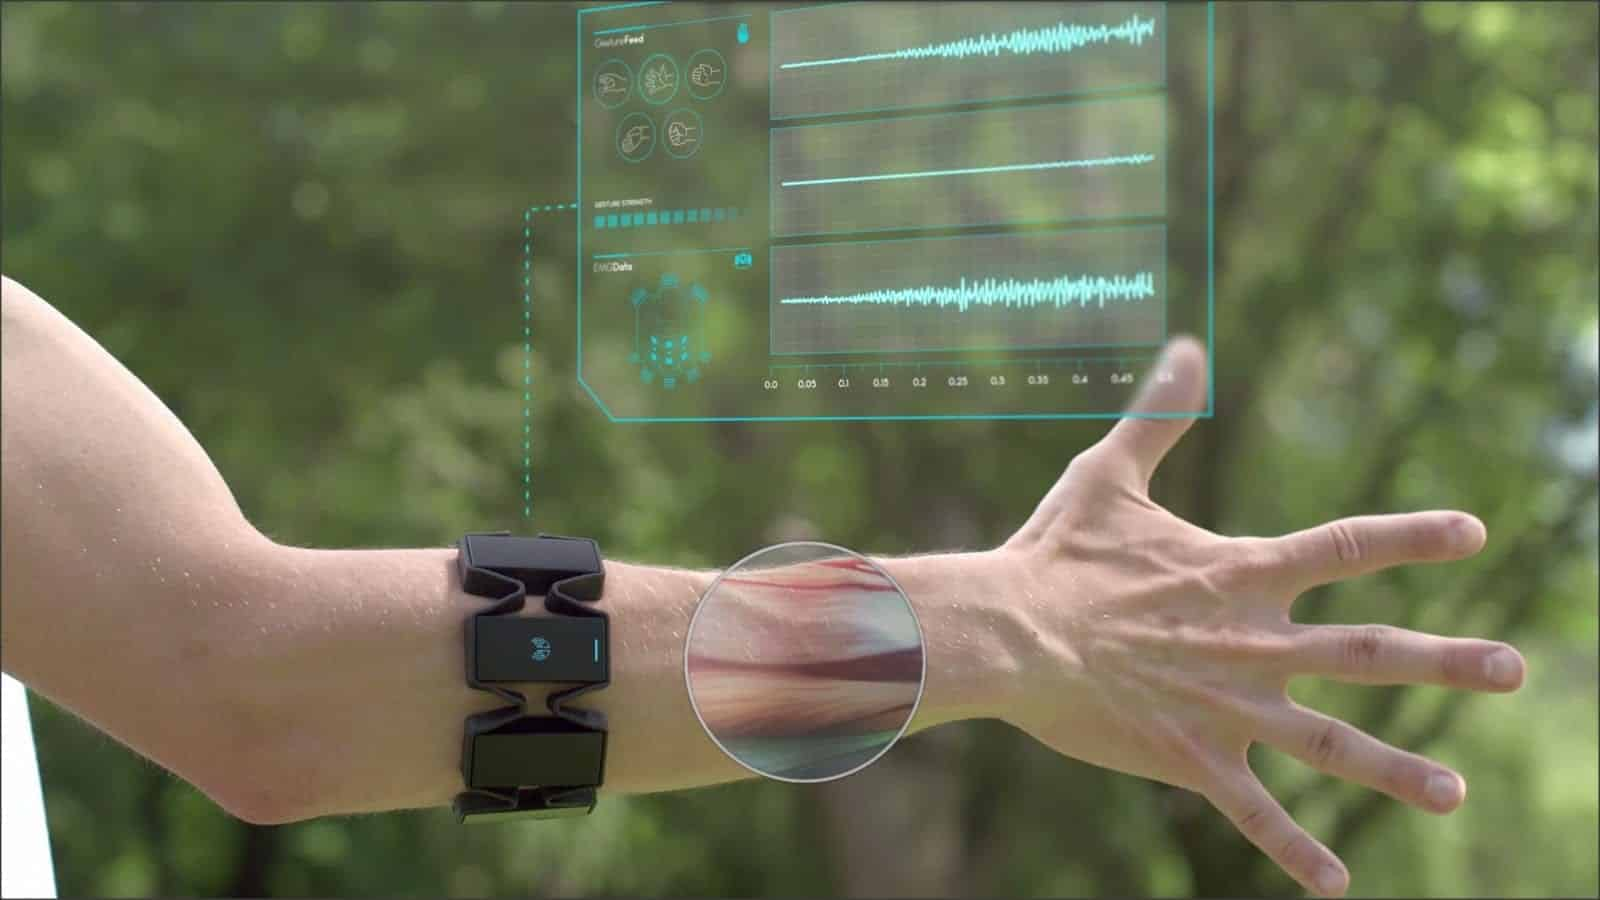 6 Most Astonishing Technology Inventions of 2019- myo armband